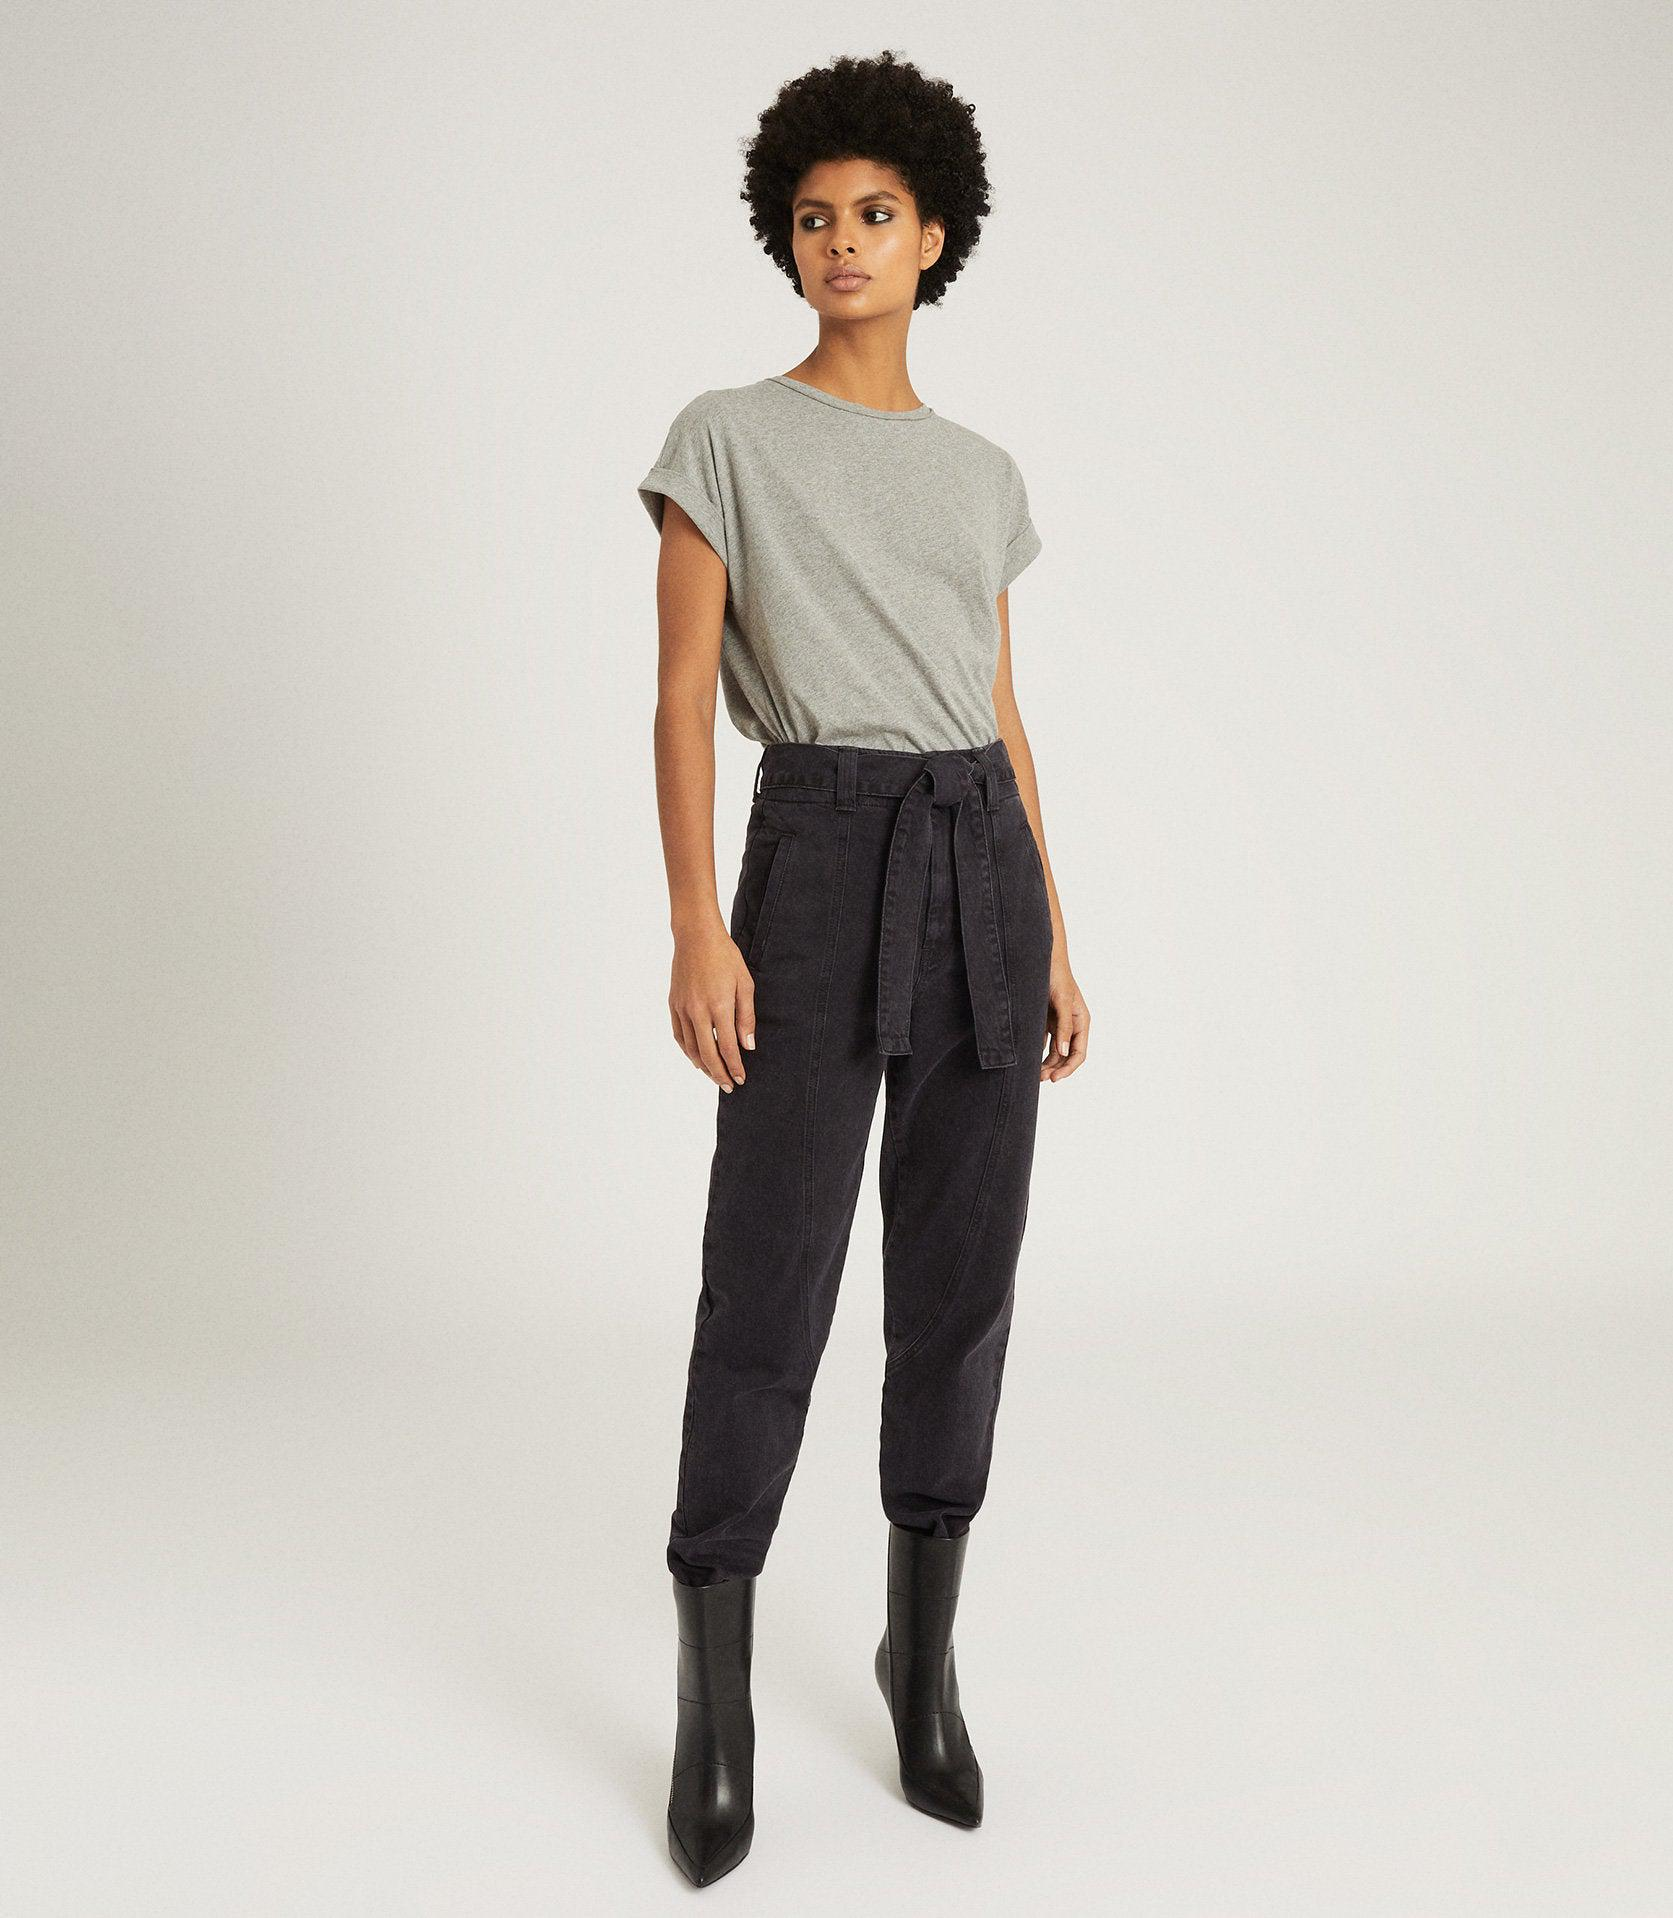 FLYNN - HIGH RISE TAPERED FIT JEANS